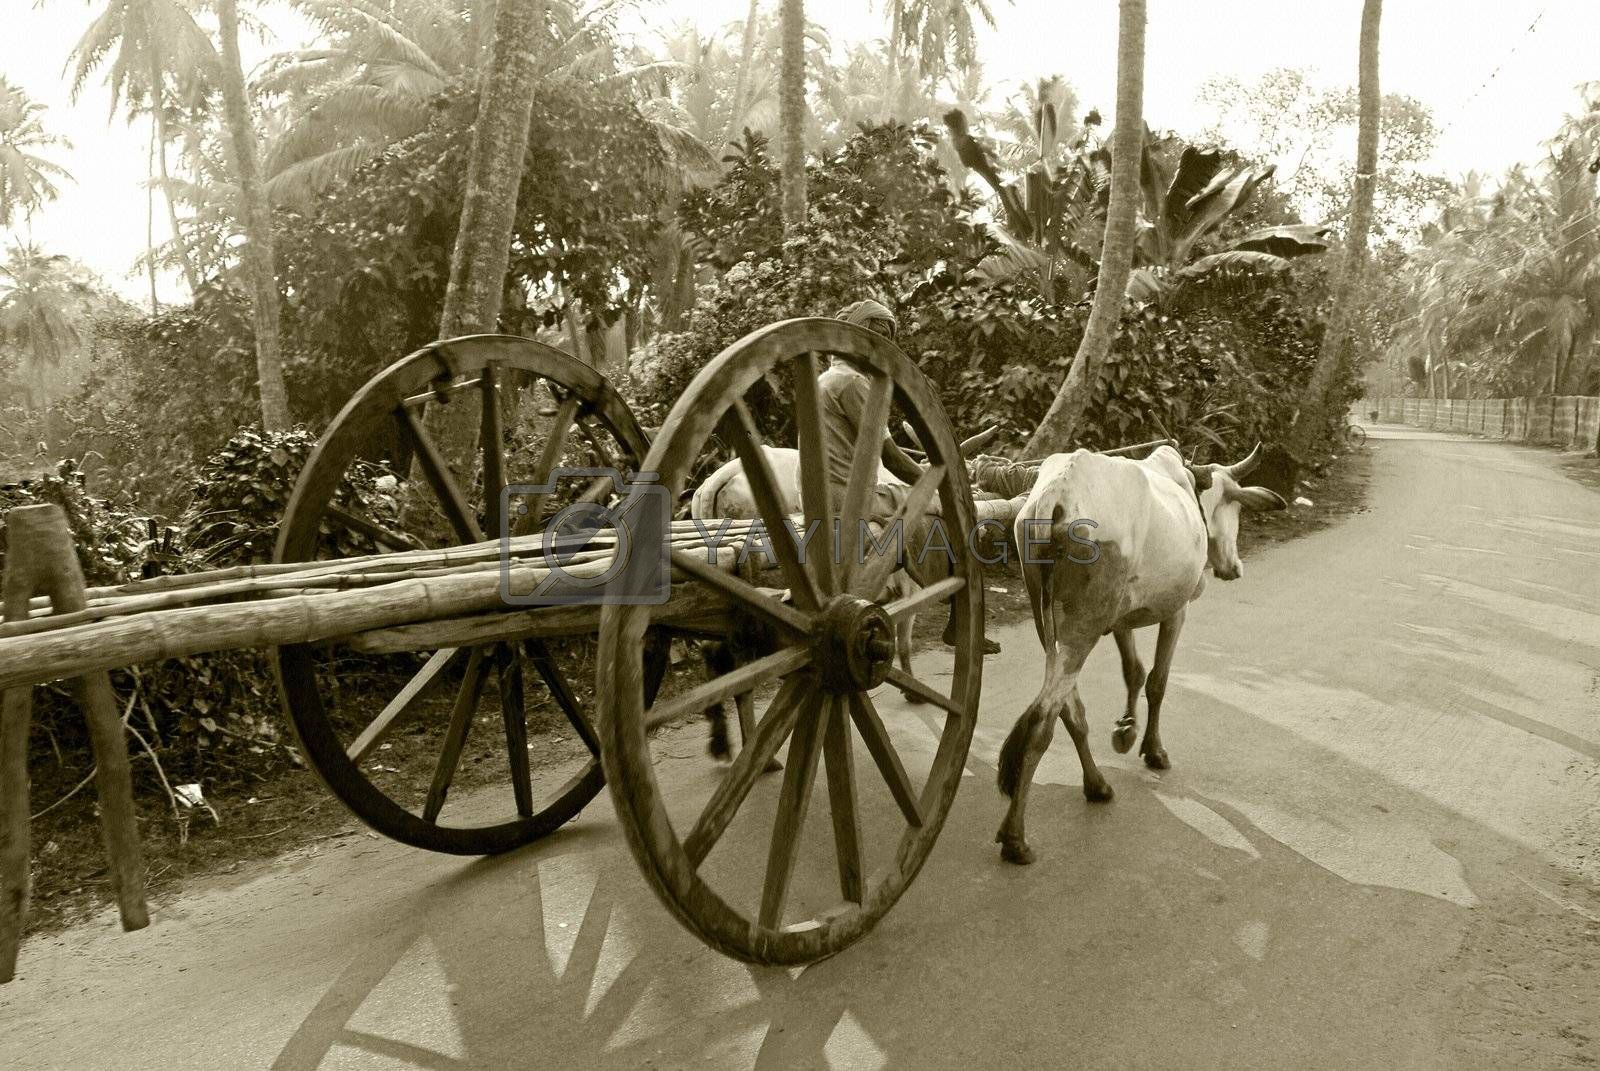 A bullock cart moving on the road